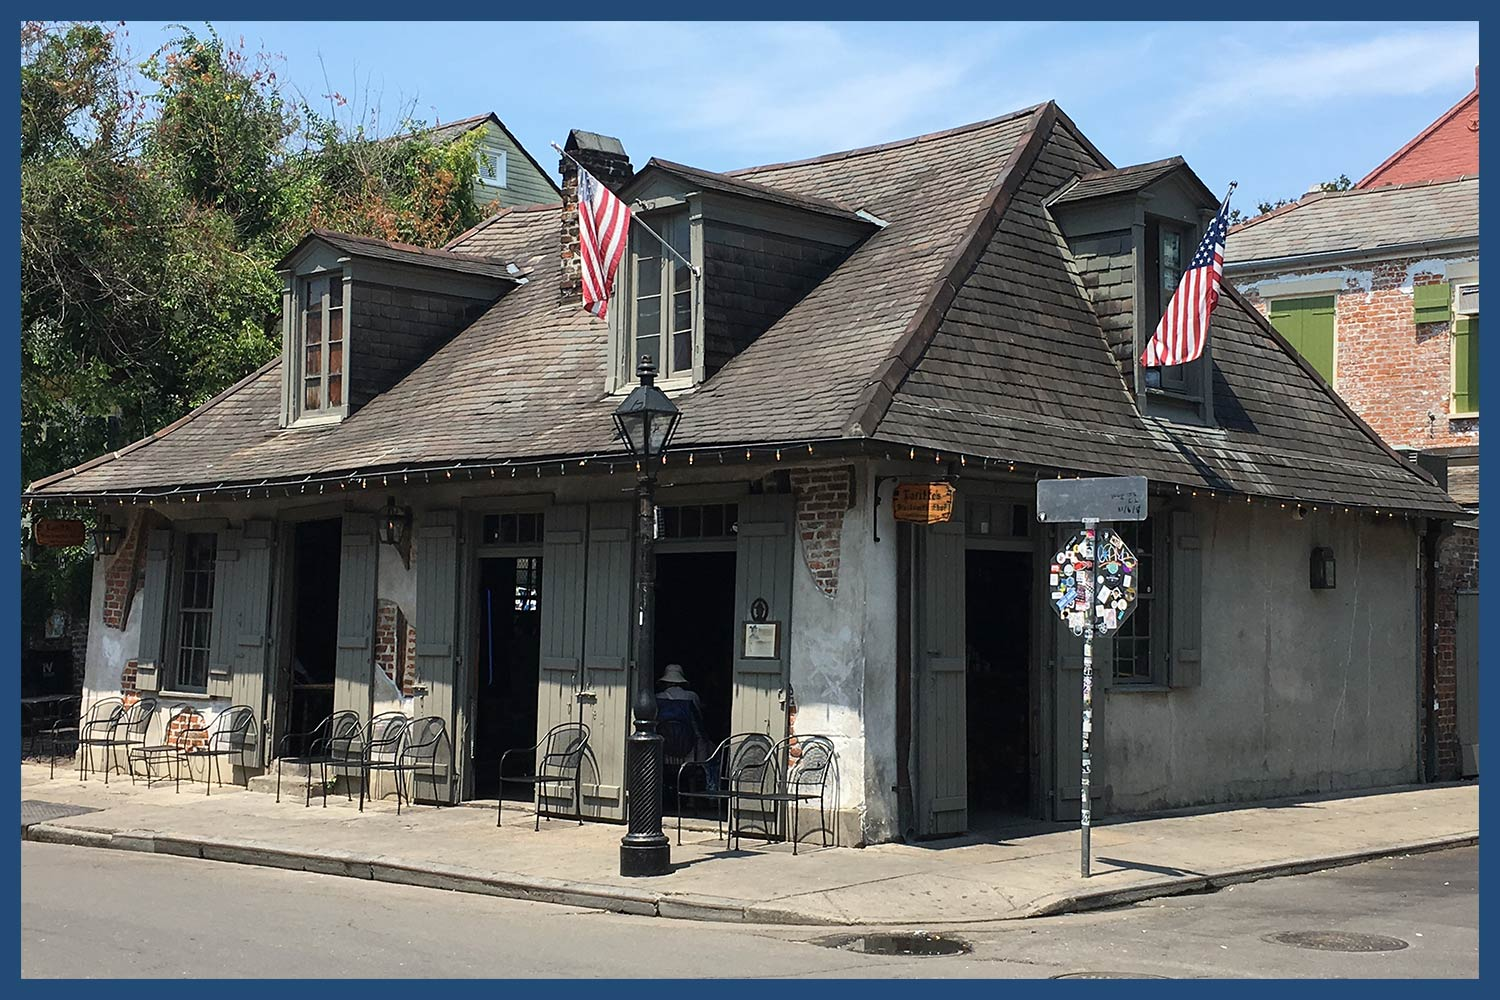 Lafitte's Blacksmith Shop in Louisiana